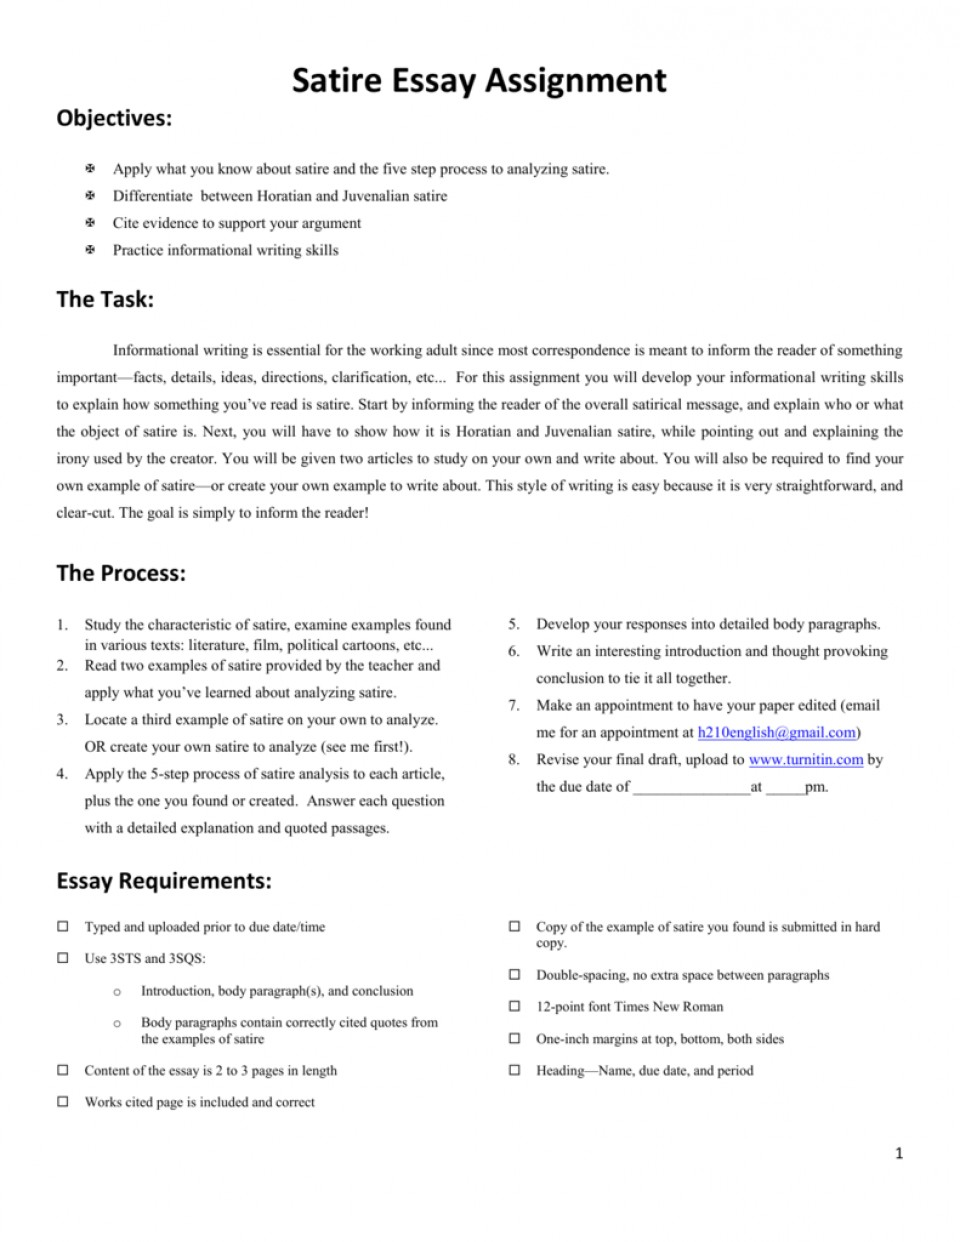 019 How To Write Satire Essay Example 009684950 1 Fascinating A An Introduction For Essay-example On Obesity 960